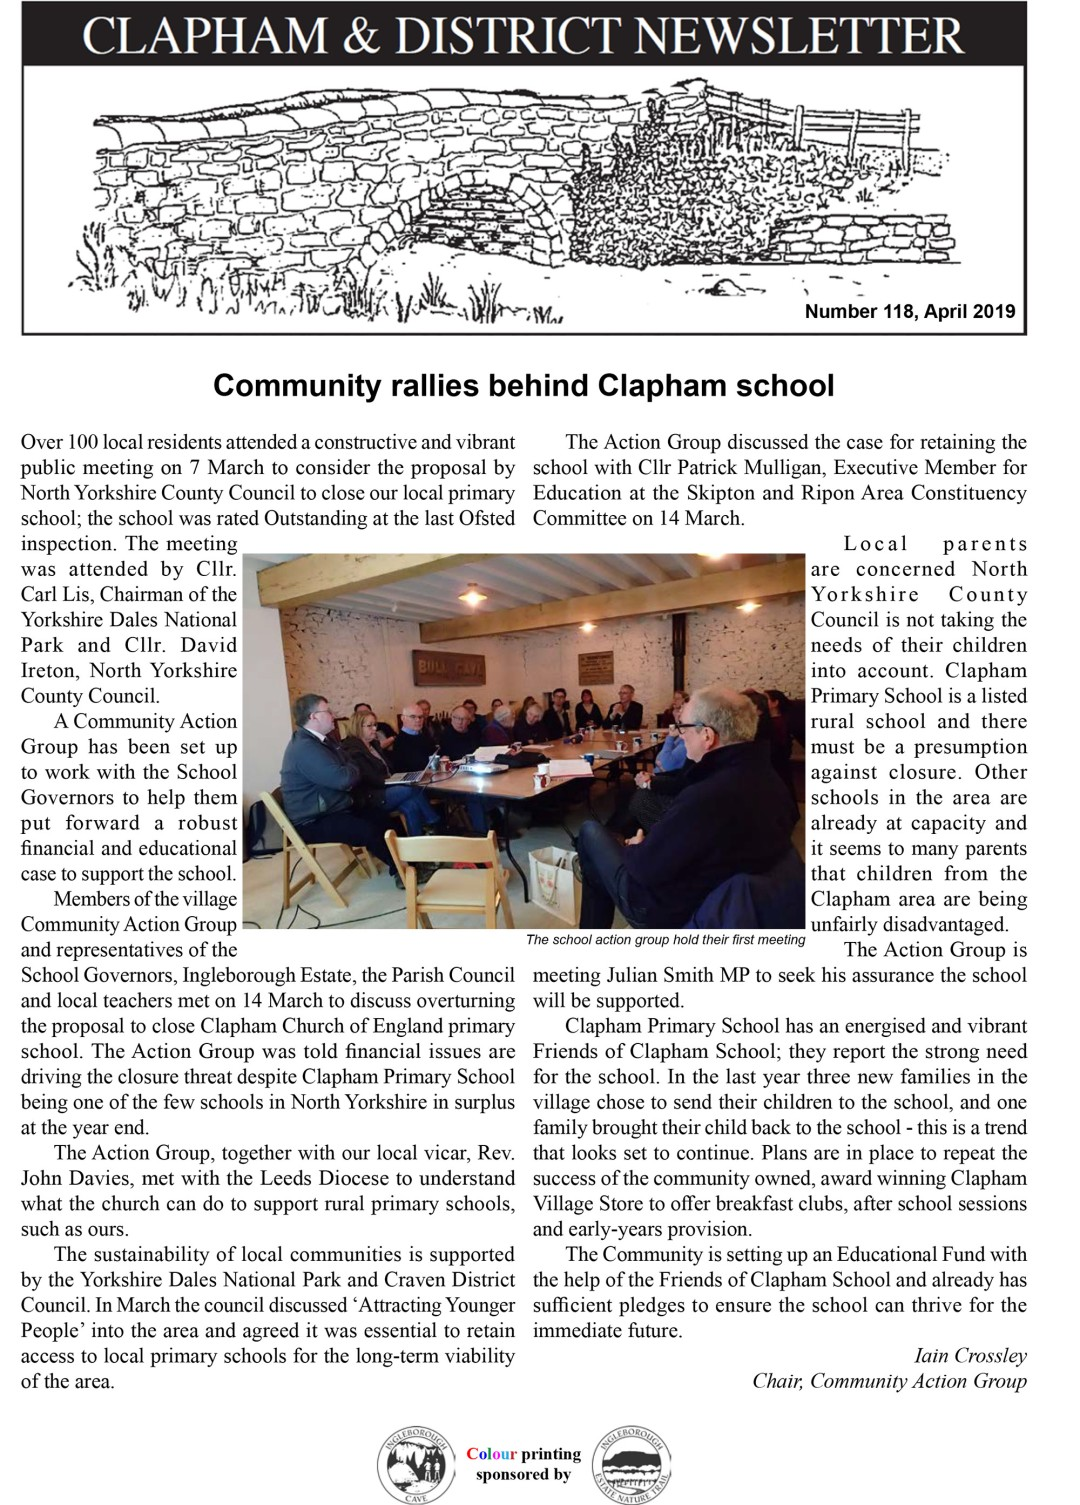 clapham-newsletter-118-april-2019-1